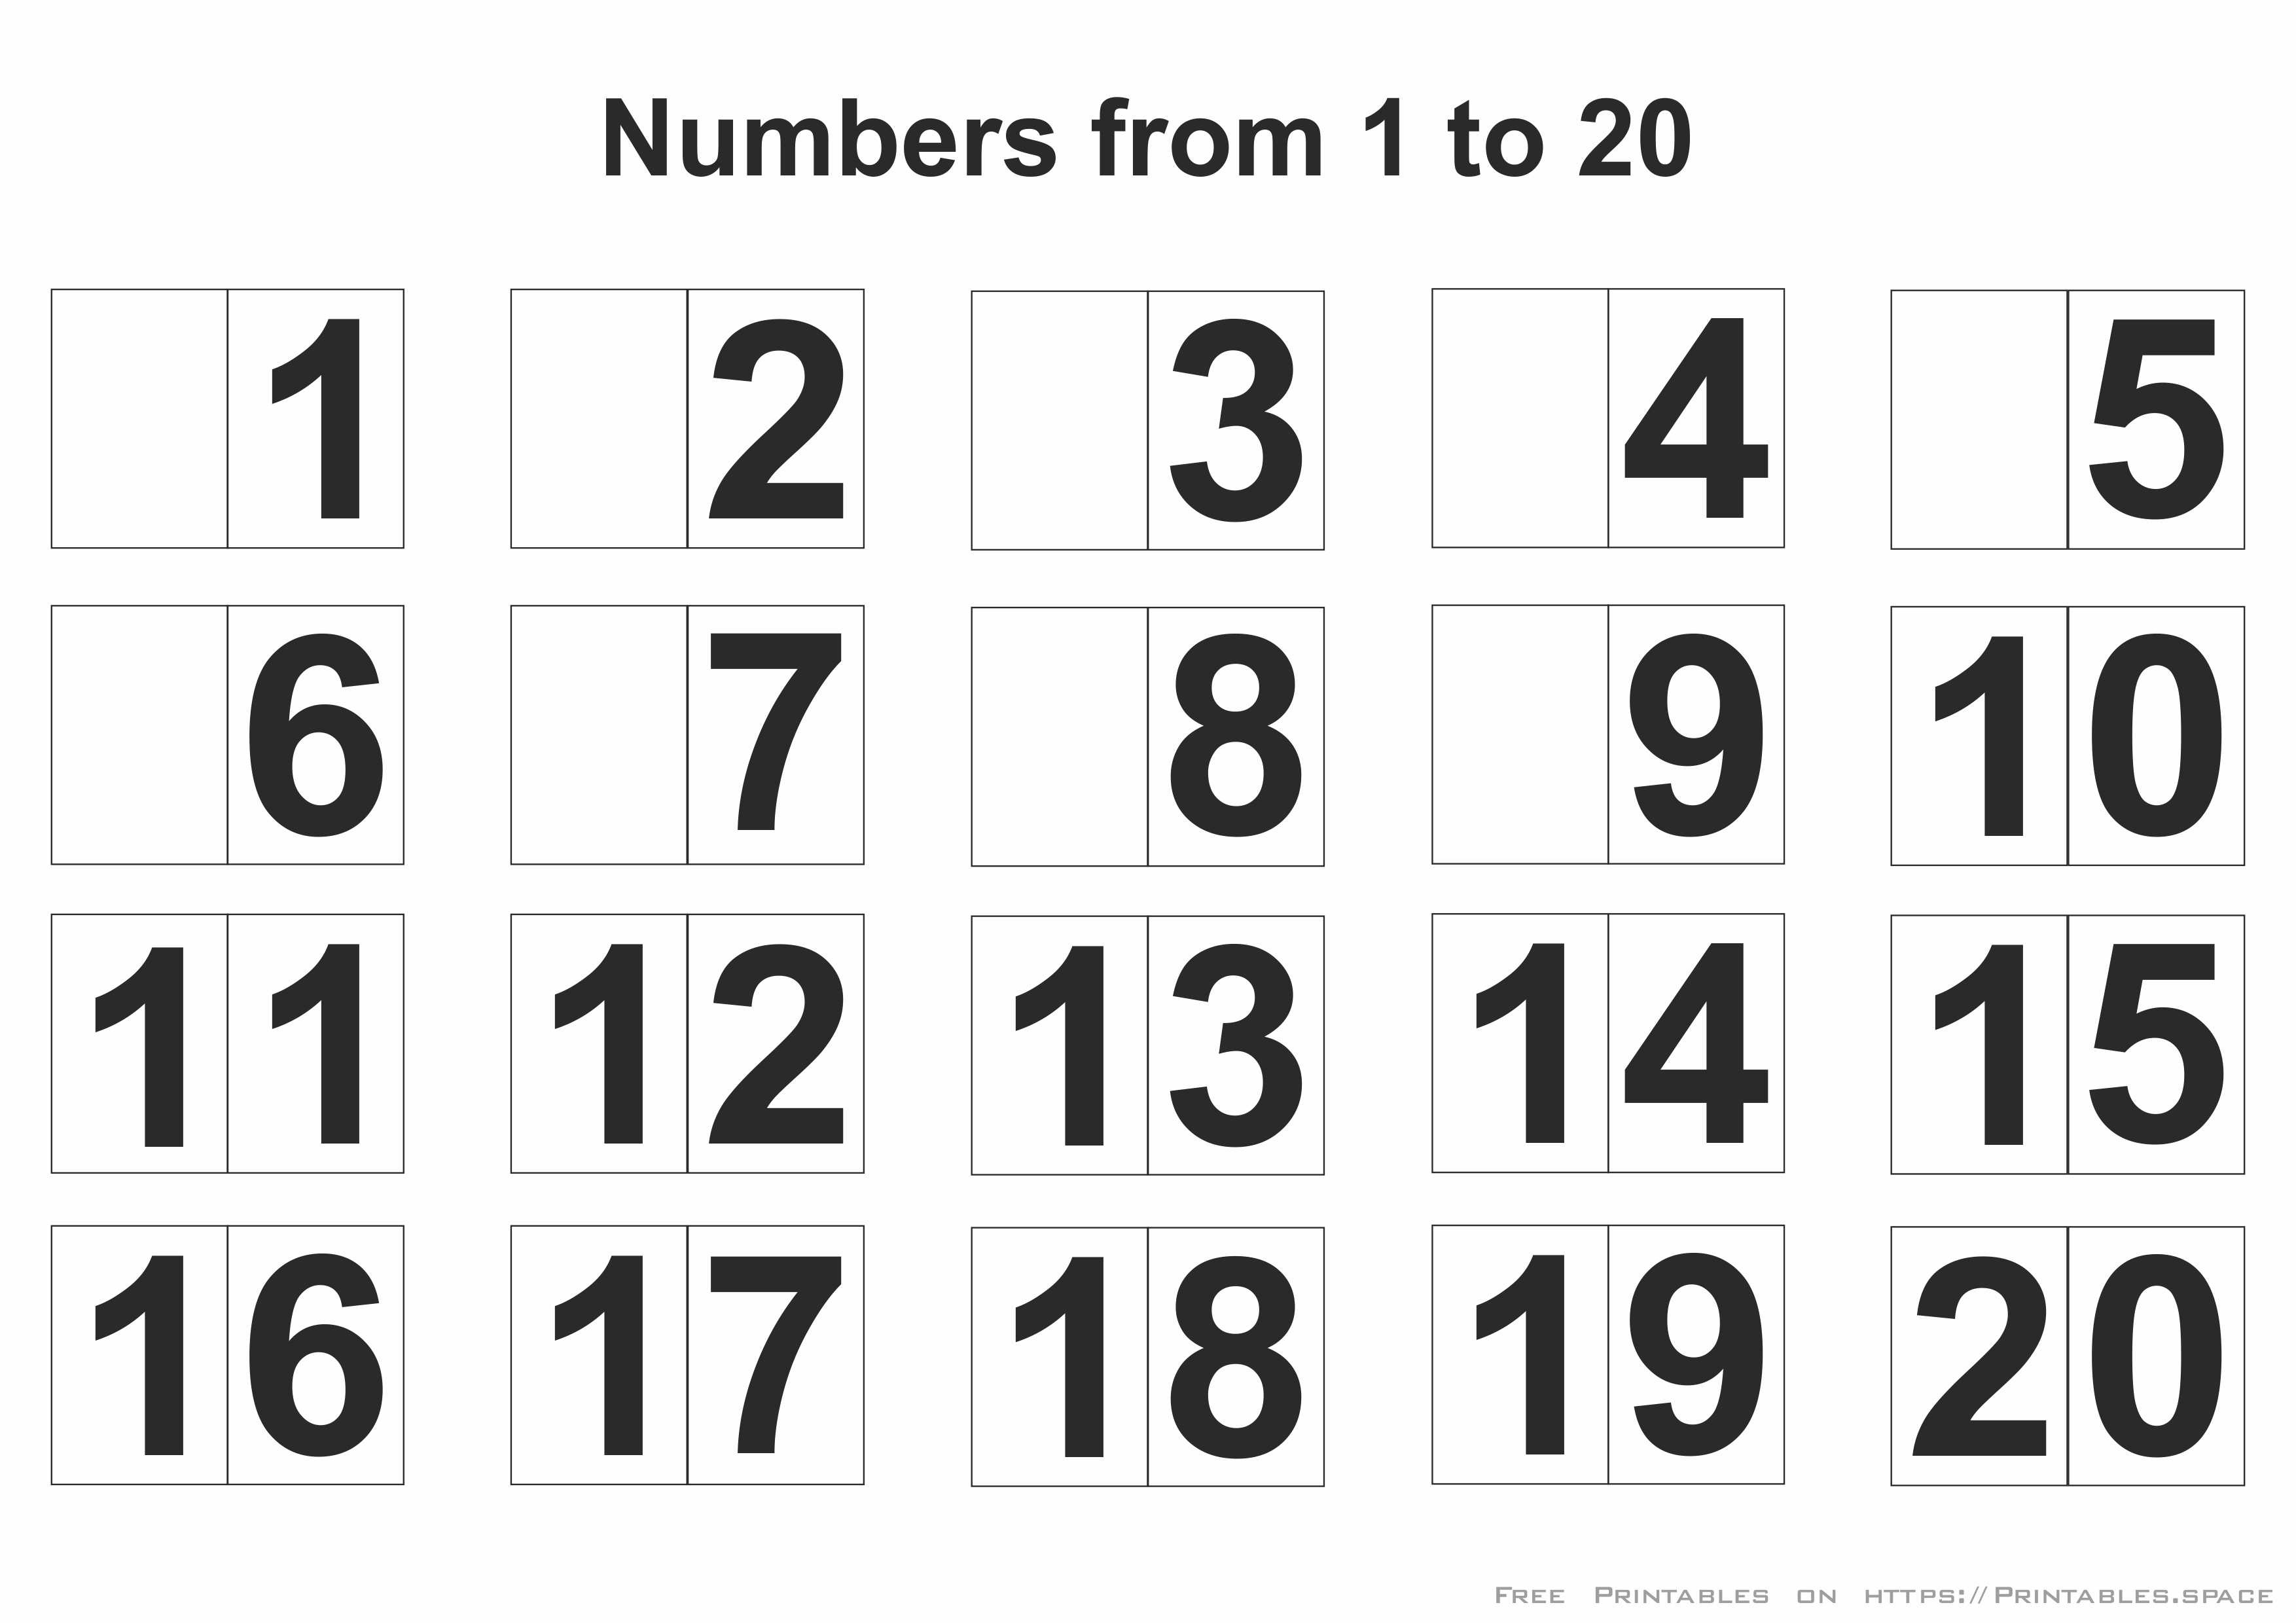 Printable Numbers 1-20 - Free Printables - Free Printable Numbers